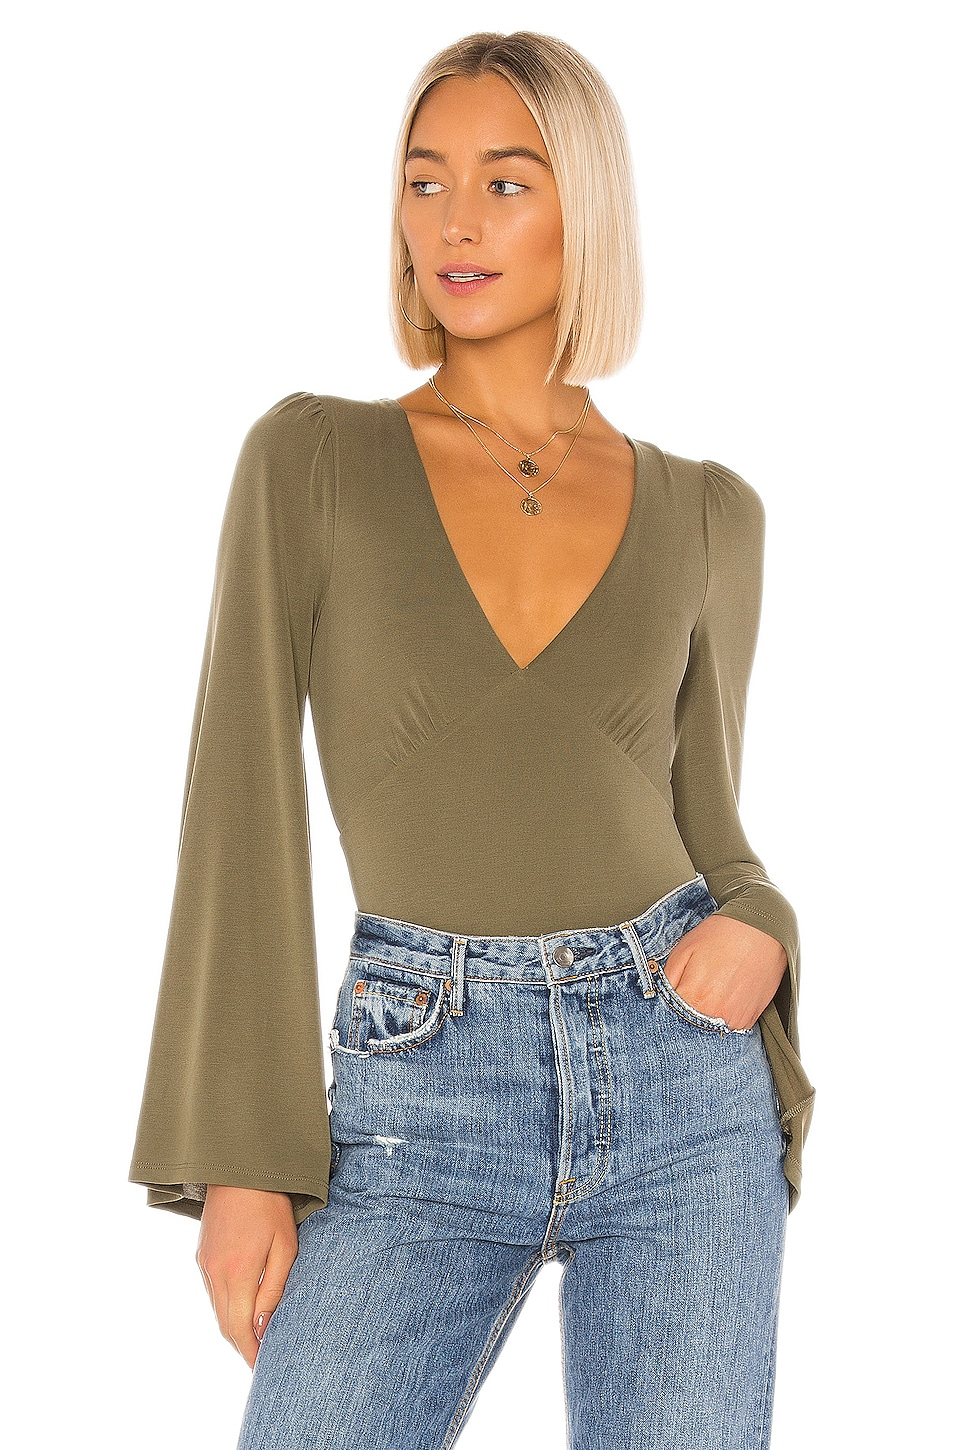 House of Harlow 1960 X REVOLVE Andressa Bodysuit in Olive Green